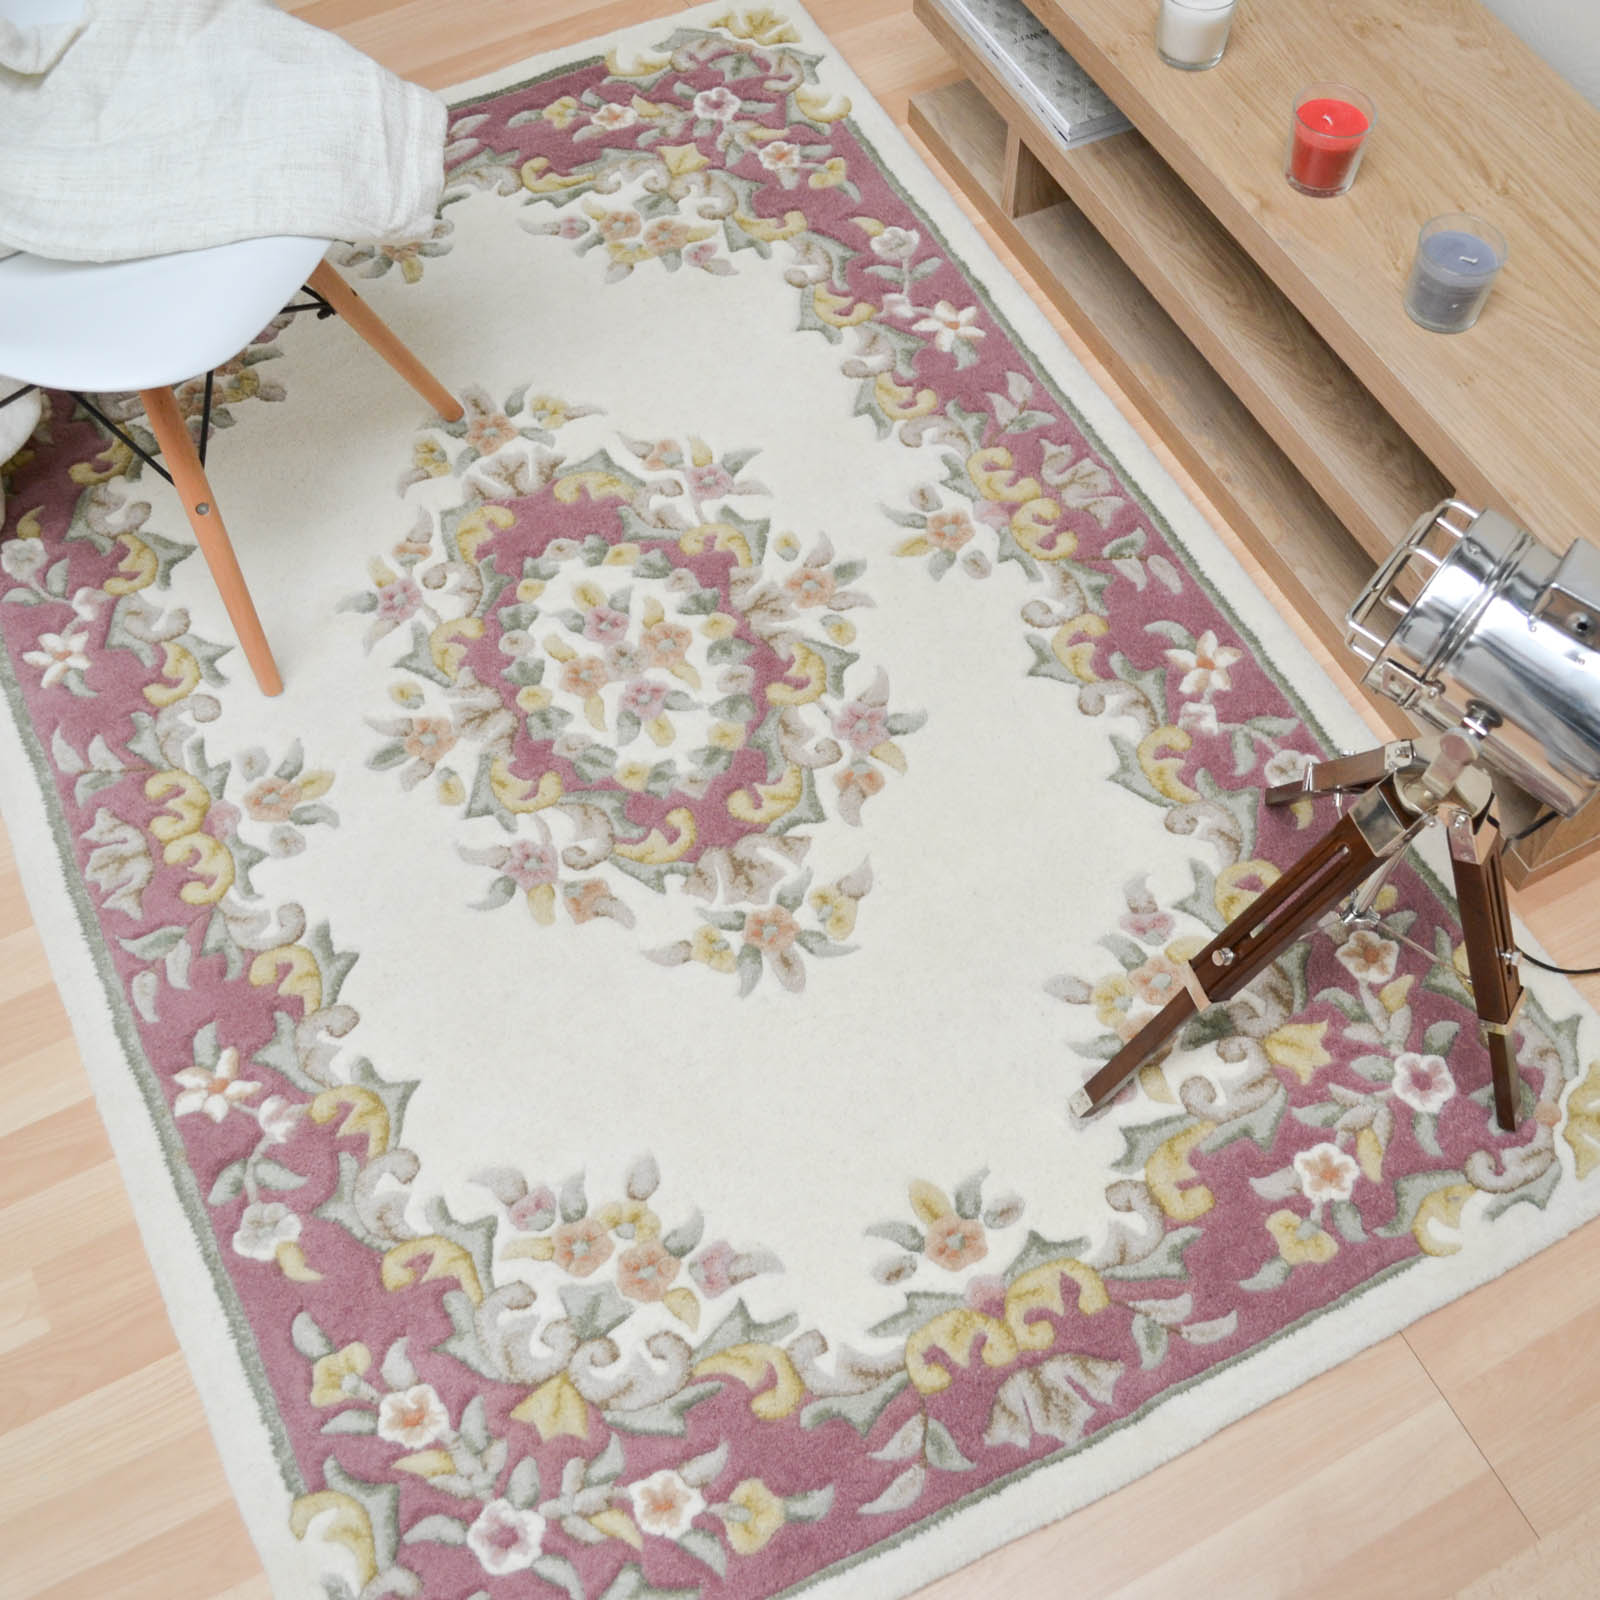 Jewel Traditional Wool Rugs In Ivory Pink